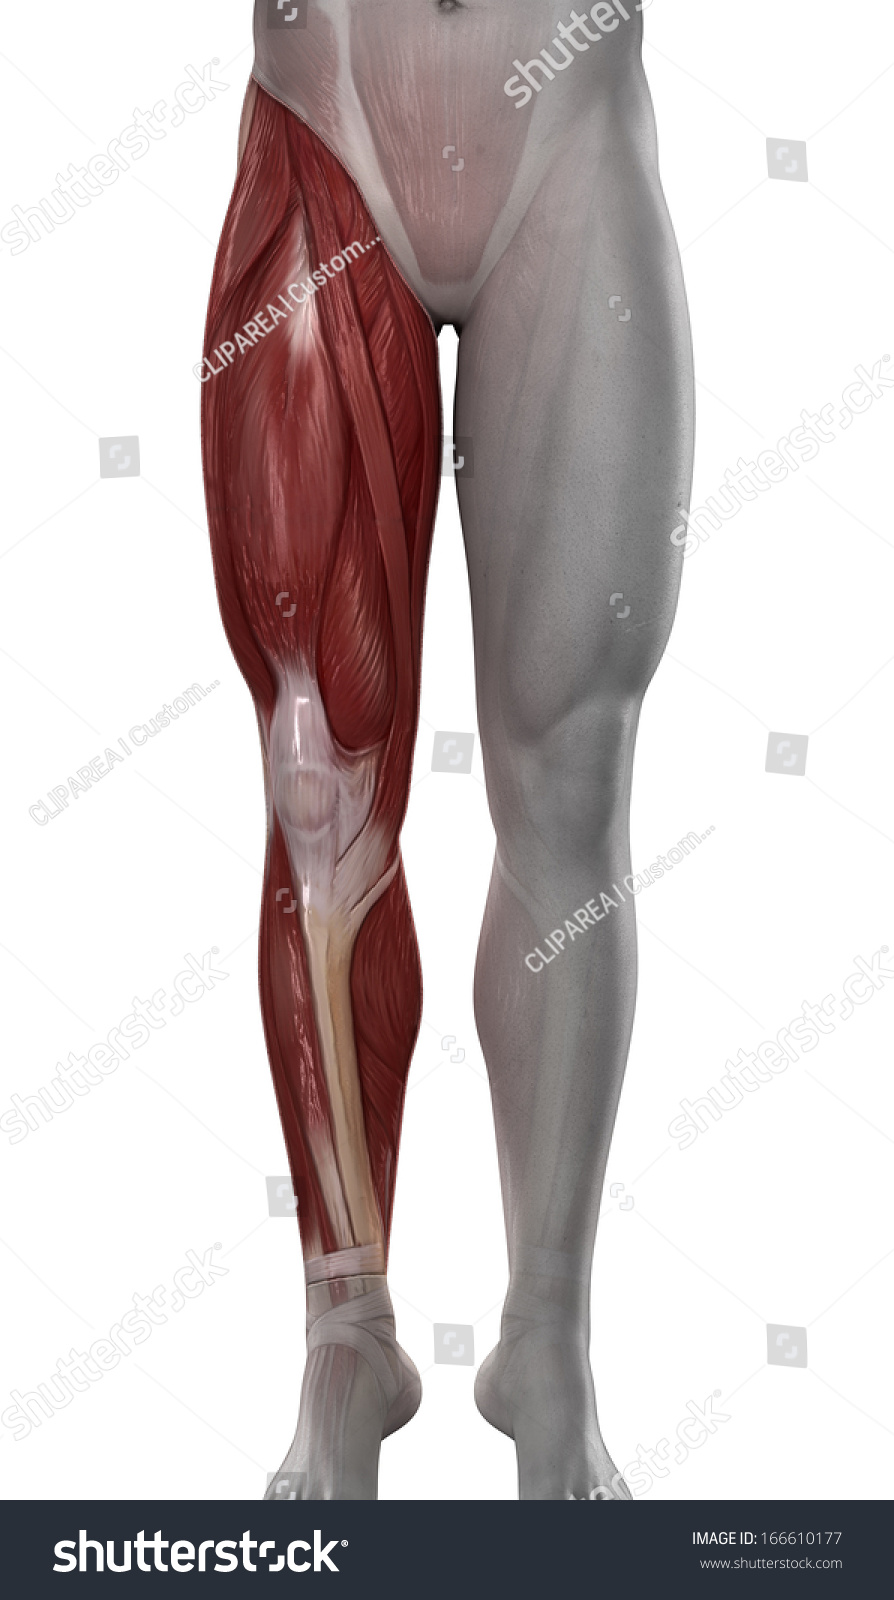 Royalty Free Stock Illustration Of Male Leg Muscles Anatomy Isolated